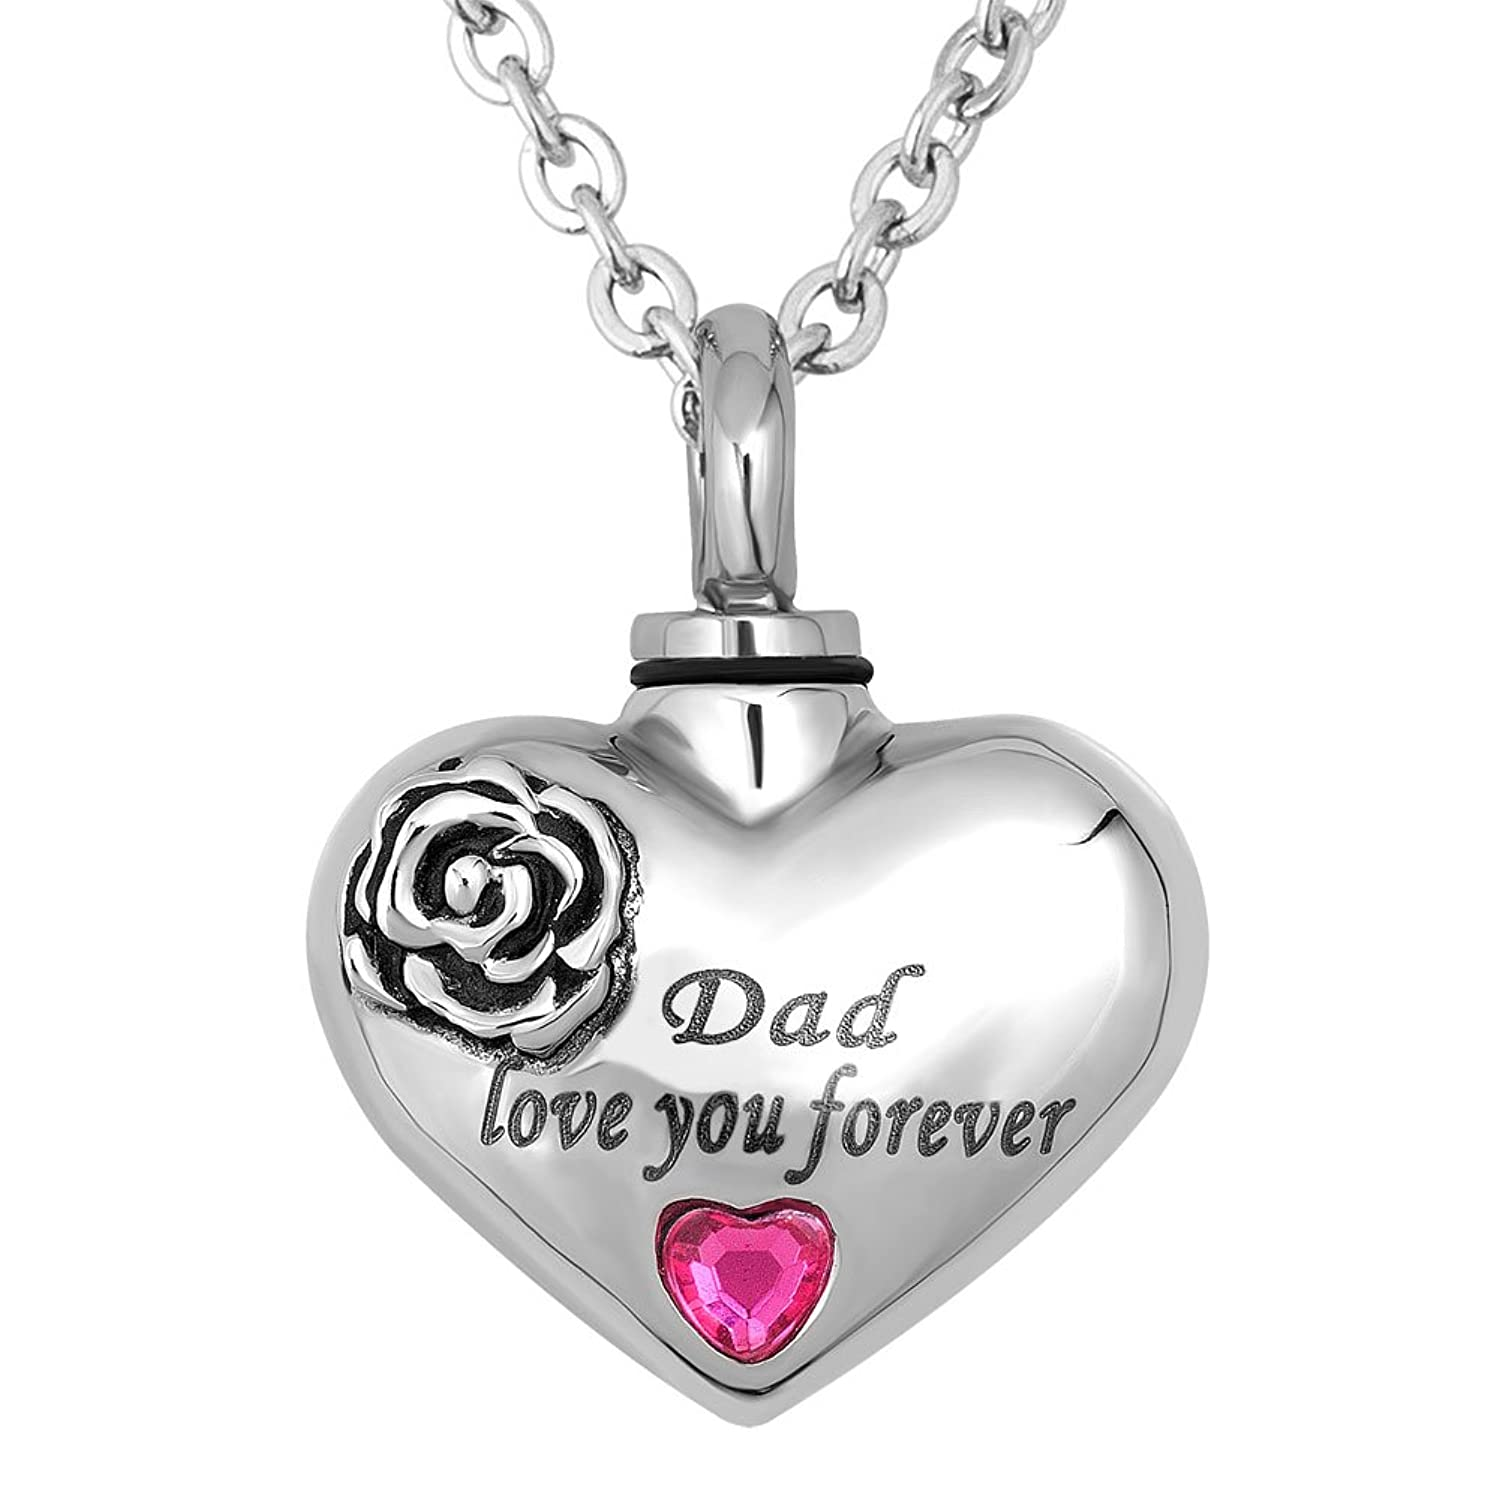 Roy Lopez Heart Love You Forever Urn Necklace Ashes Keepsake Memorial Cremation